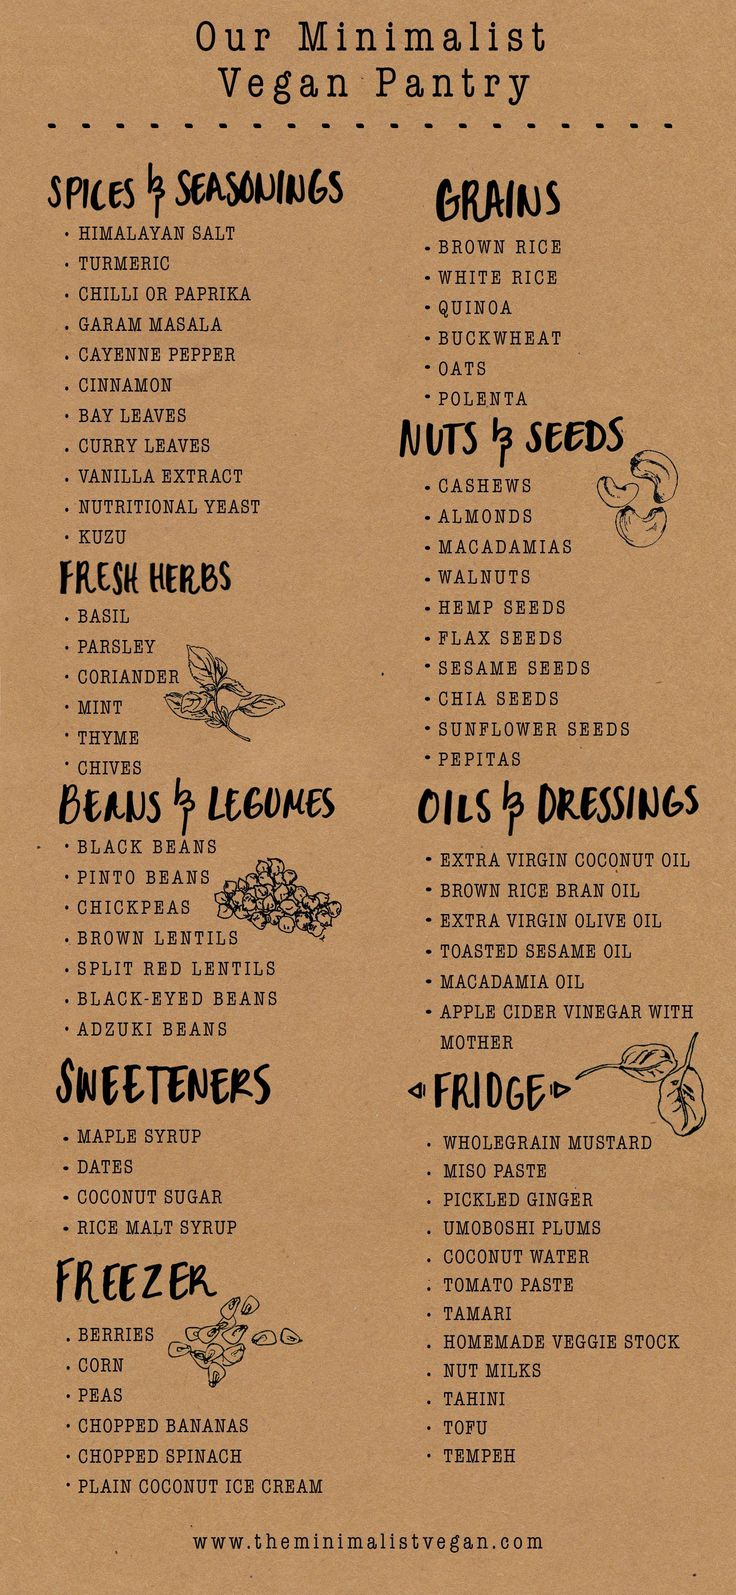 Our Minimalist Vegan Pantry: Infographic